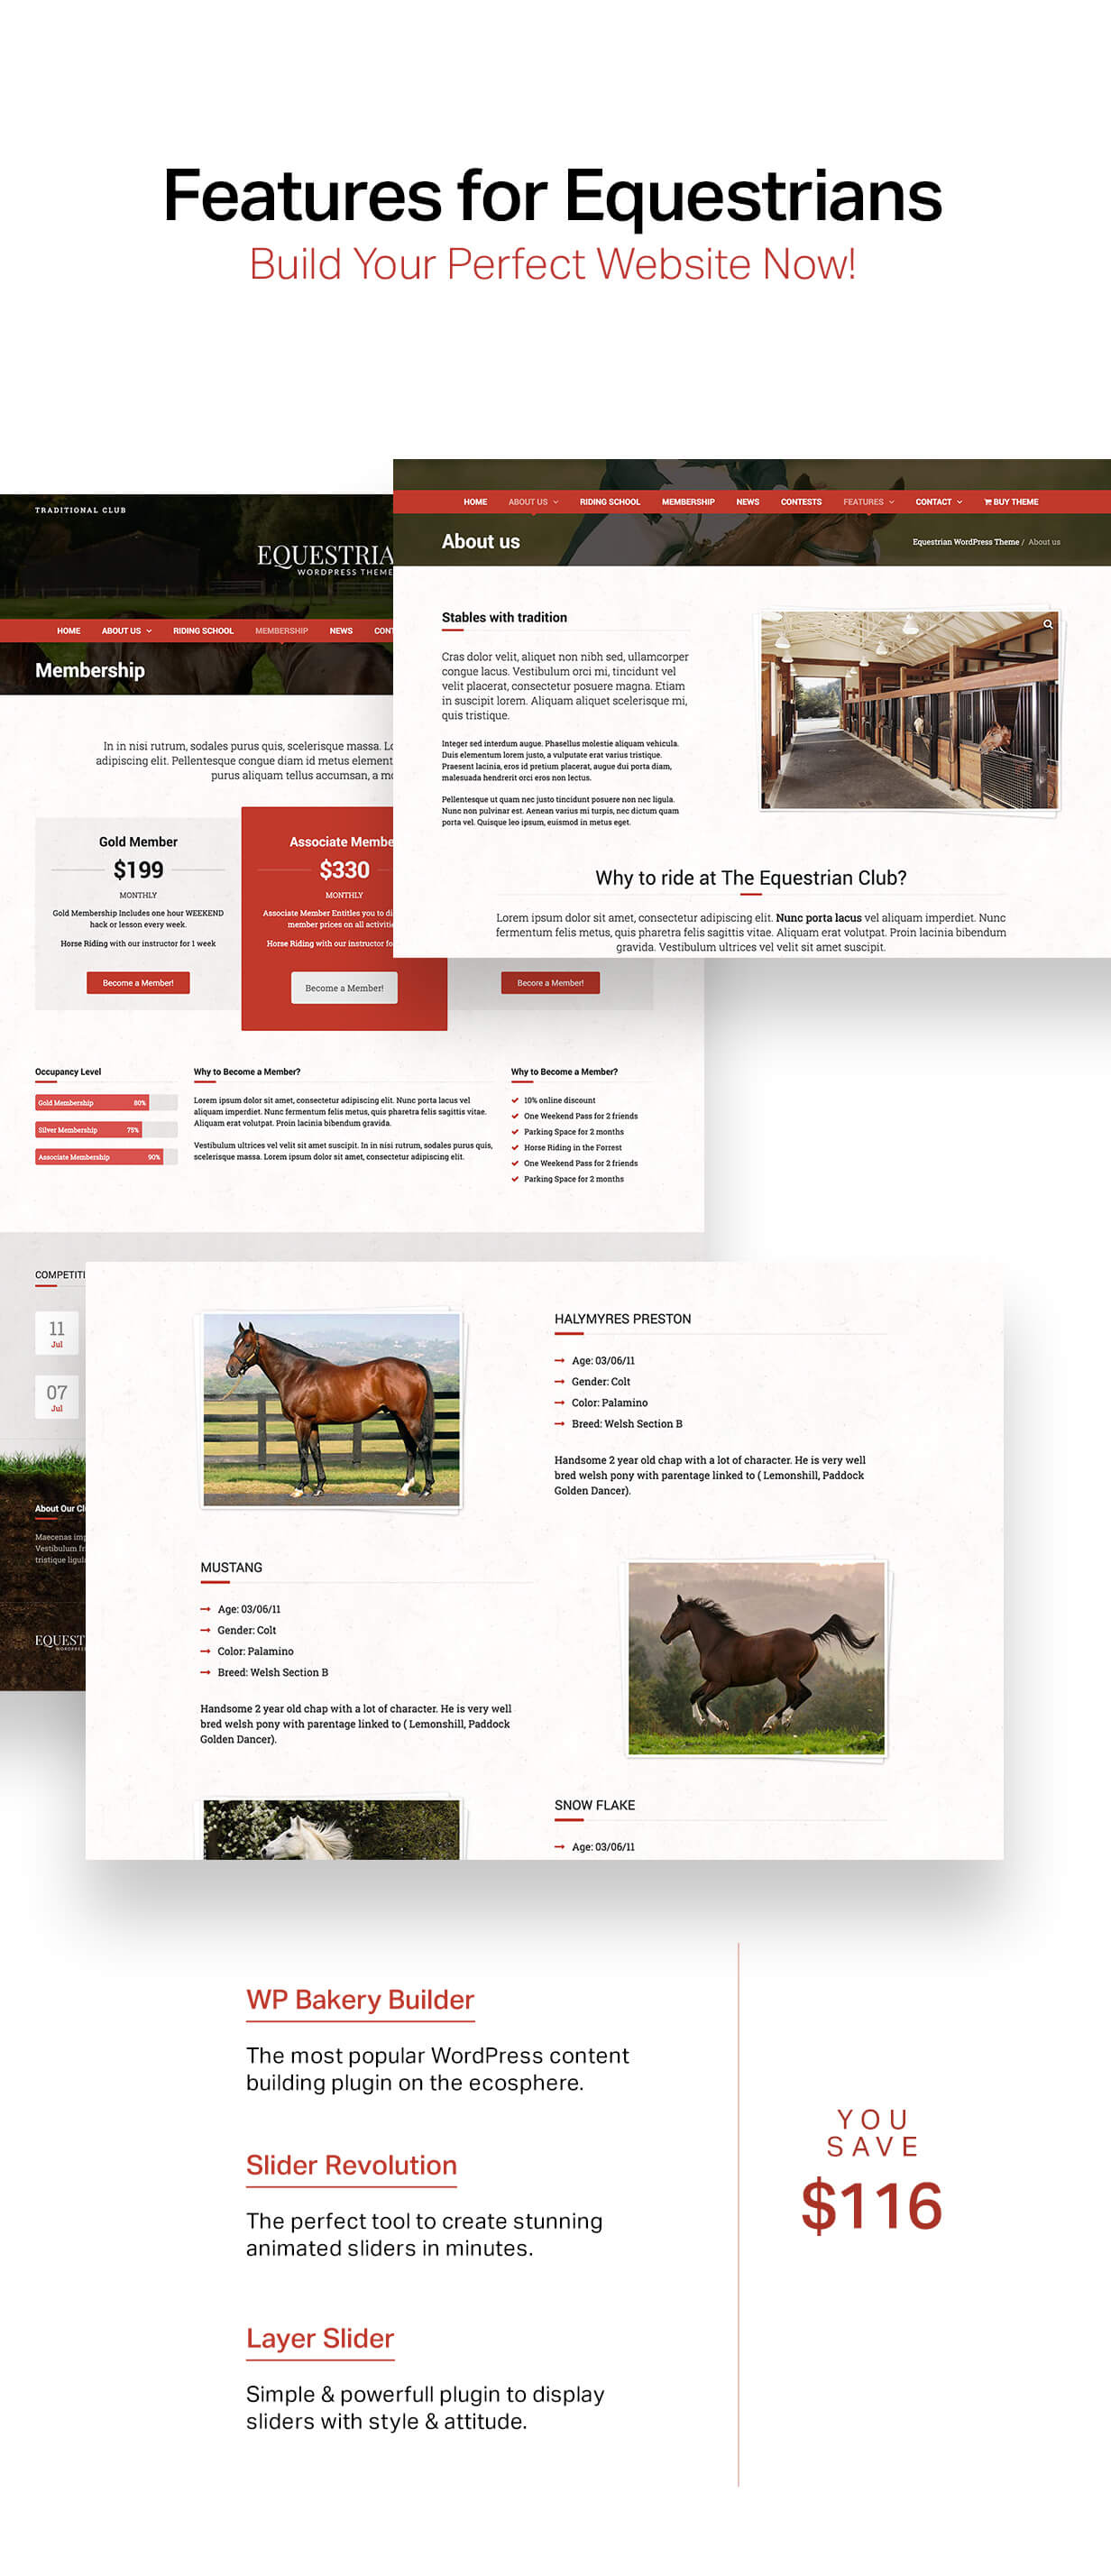 Latest Photo of  Equestrian Horses and Stables WordPress Theme